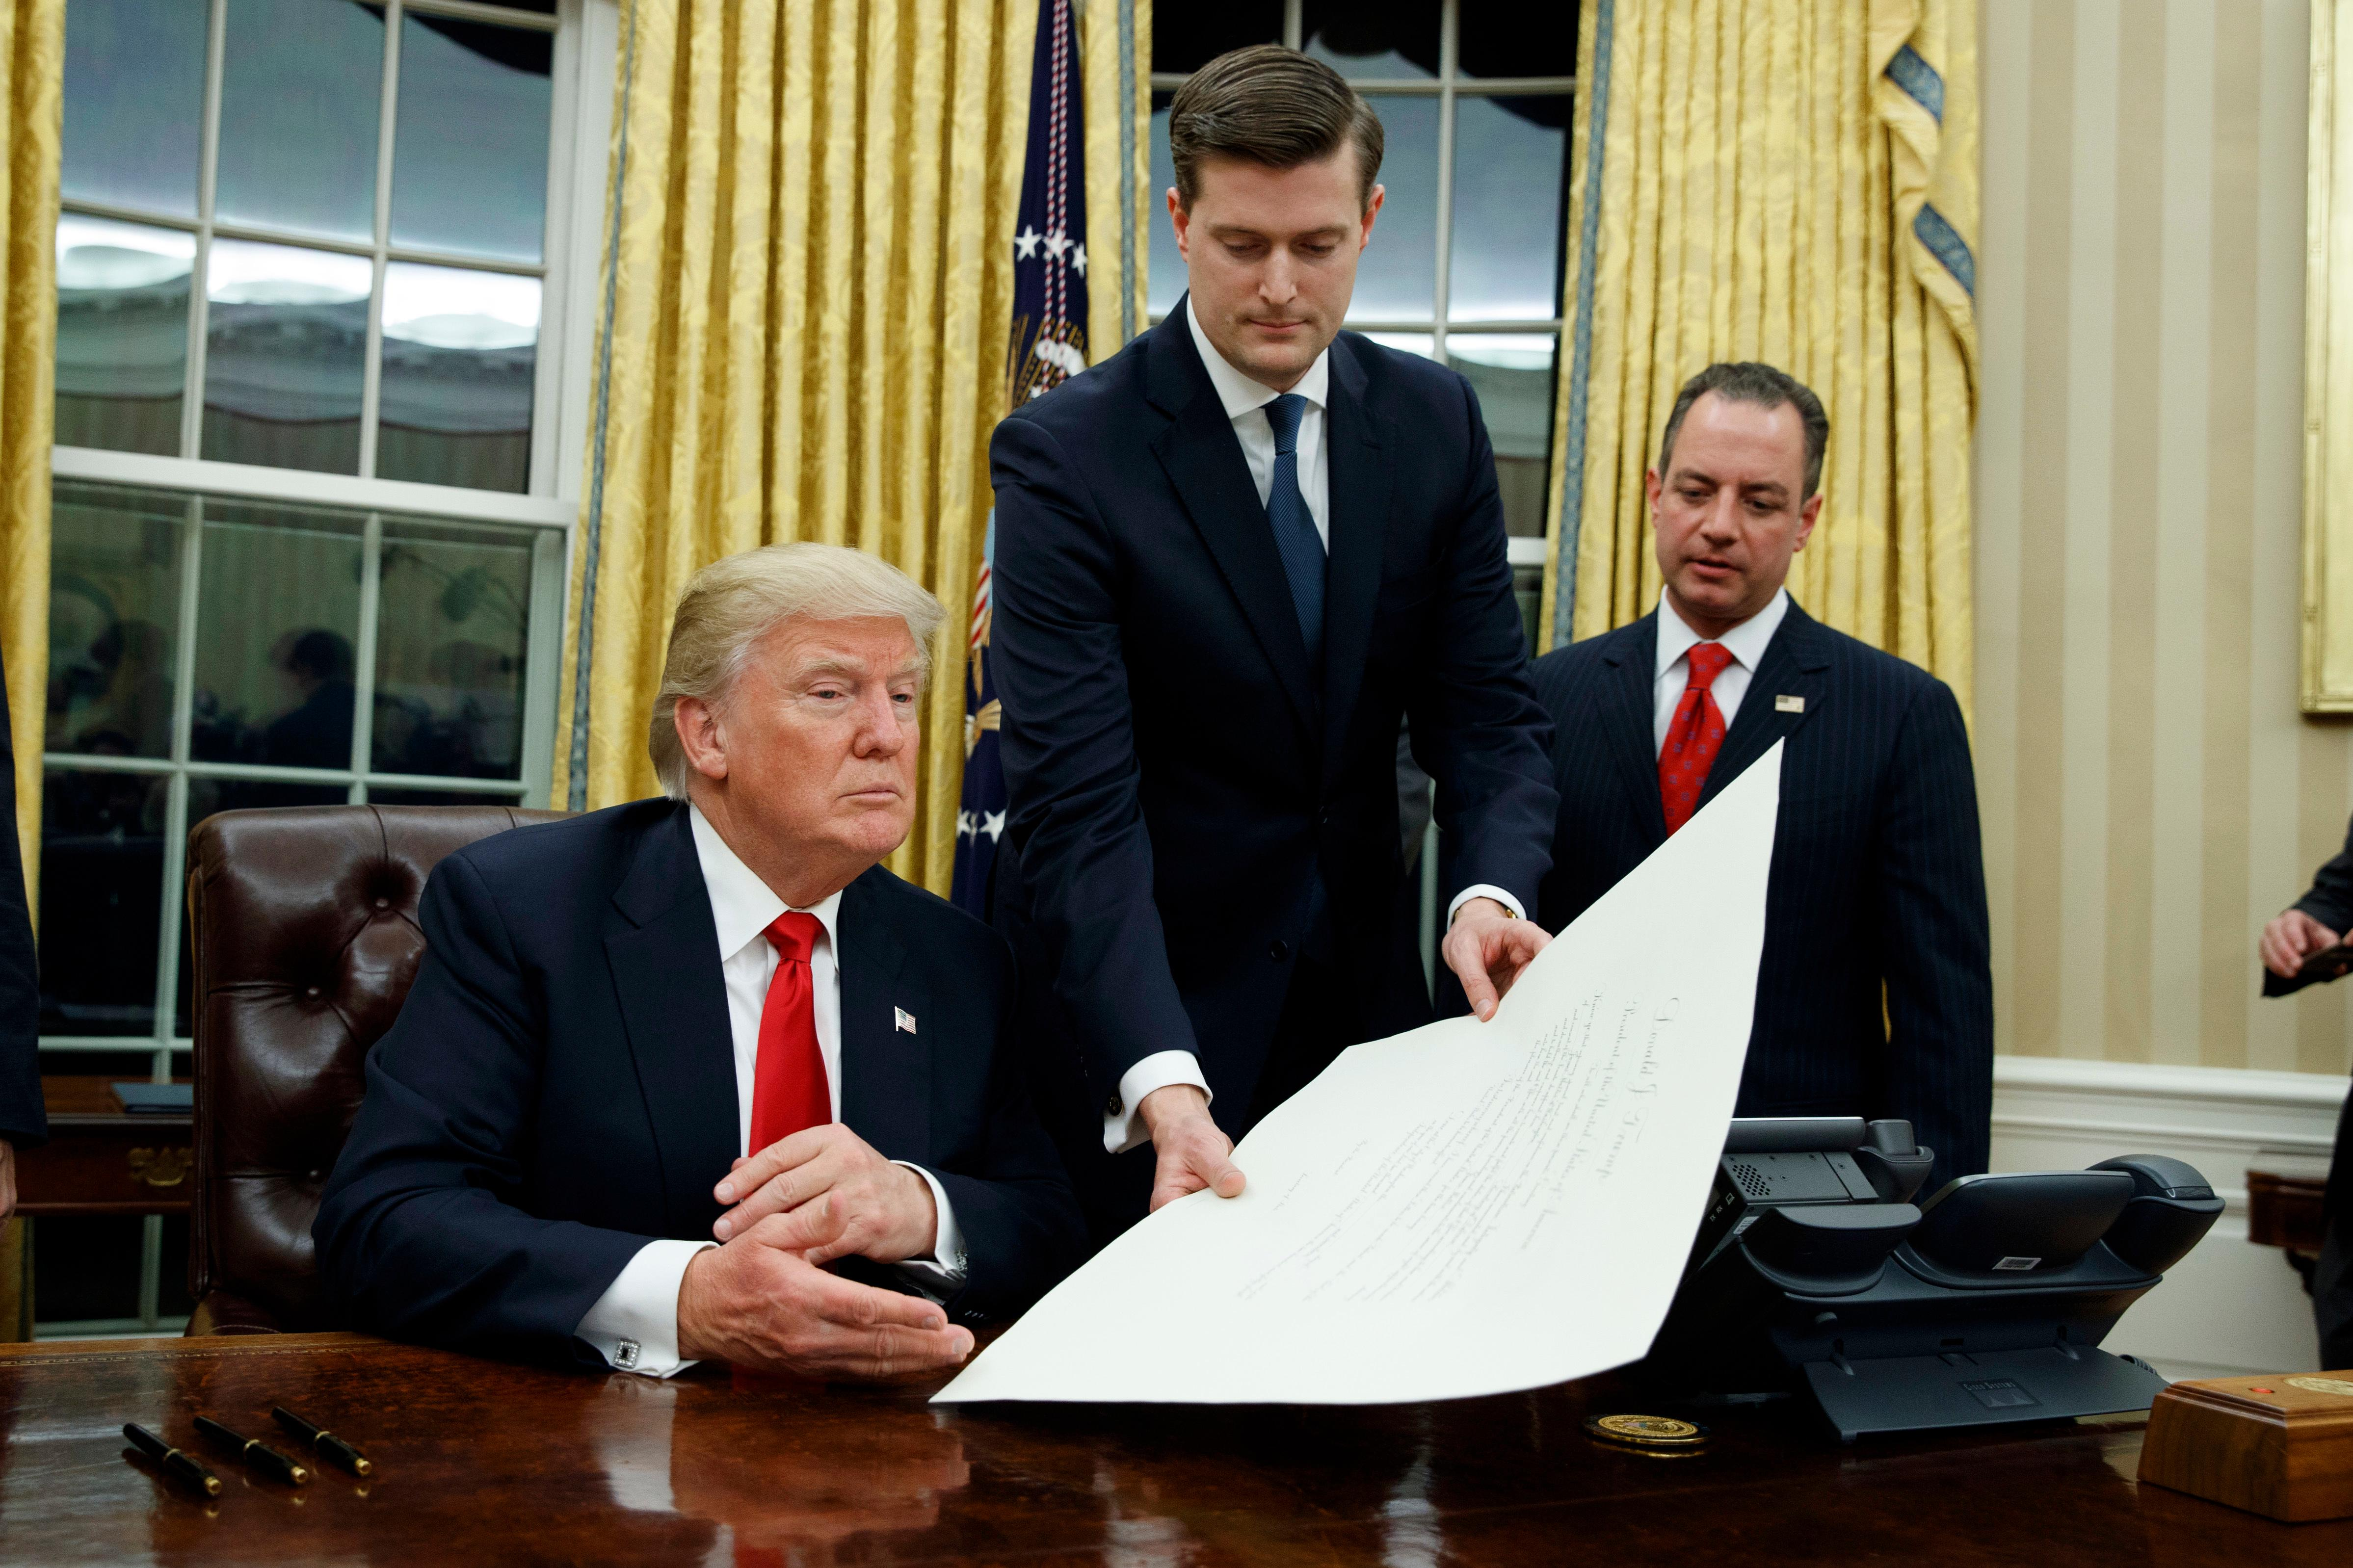 FILE - In this Jan. 20, 2017 file photo, White House Staff Secretary Rob Porter, center, hands President Donald Trump a confirmation order for James Mattis as defense secretary, in the Oval Office of the White House in Washington, as White House Chief of Staff Reince Priebus, right, watches.  Porter is stepping down following allegations of domestic abuse by his two ex-wives.   (AP Photo/Evan Vucci)